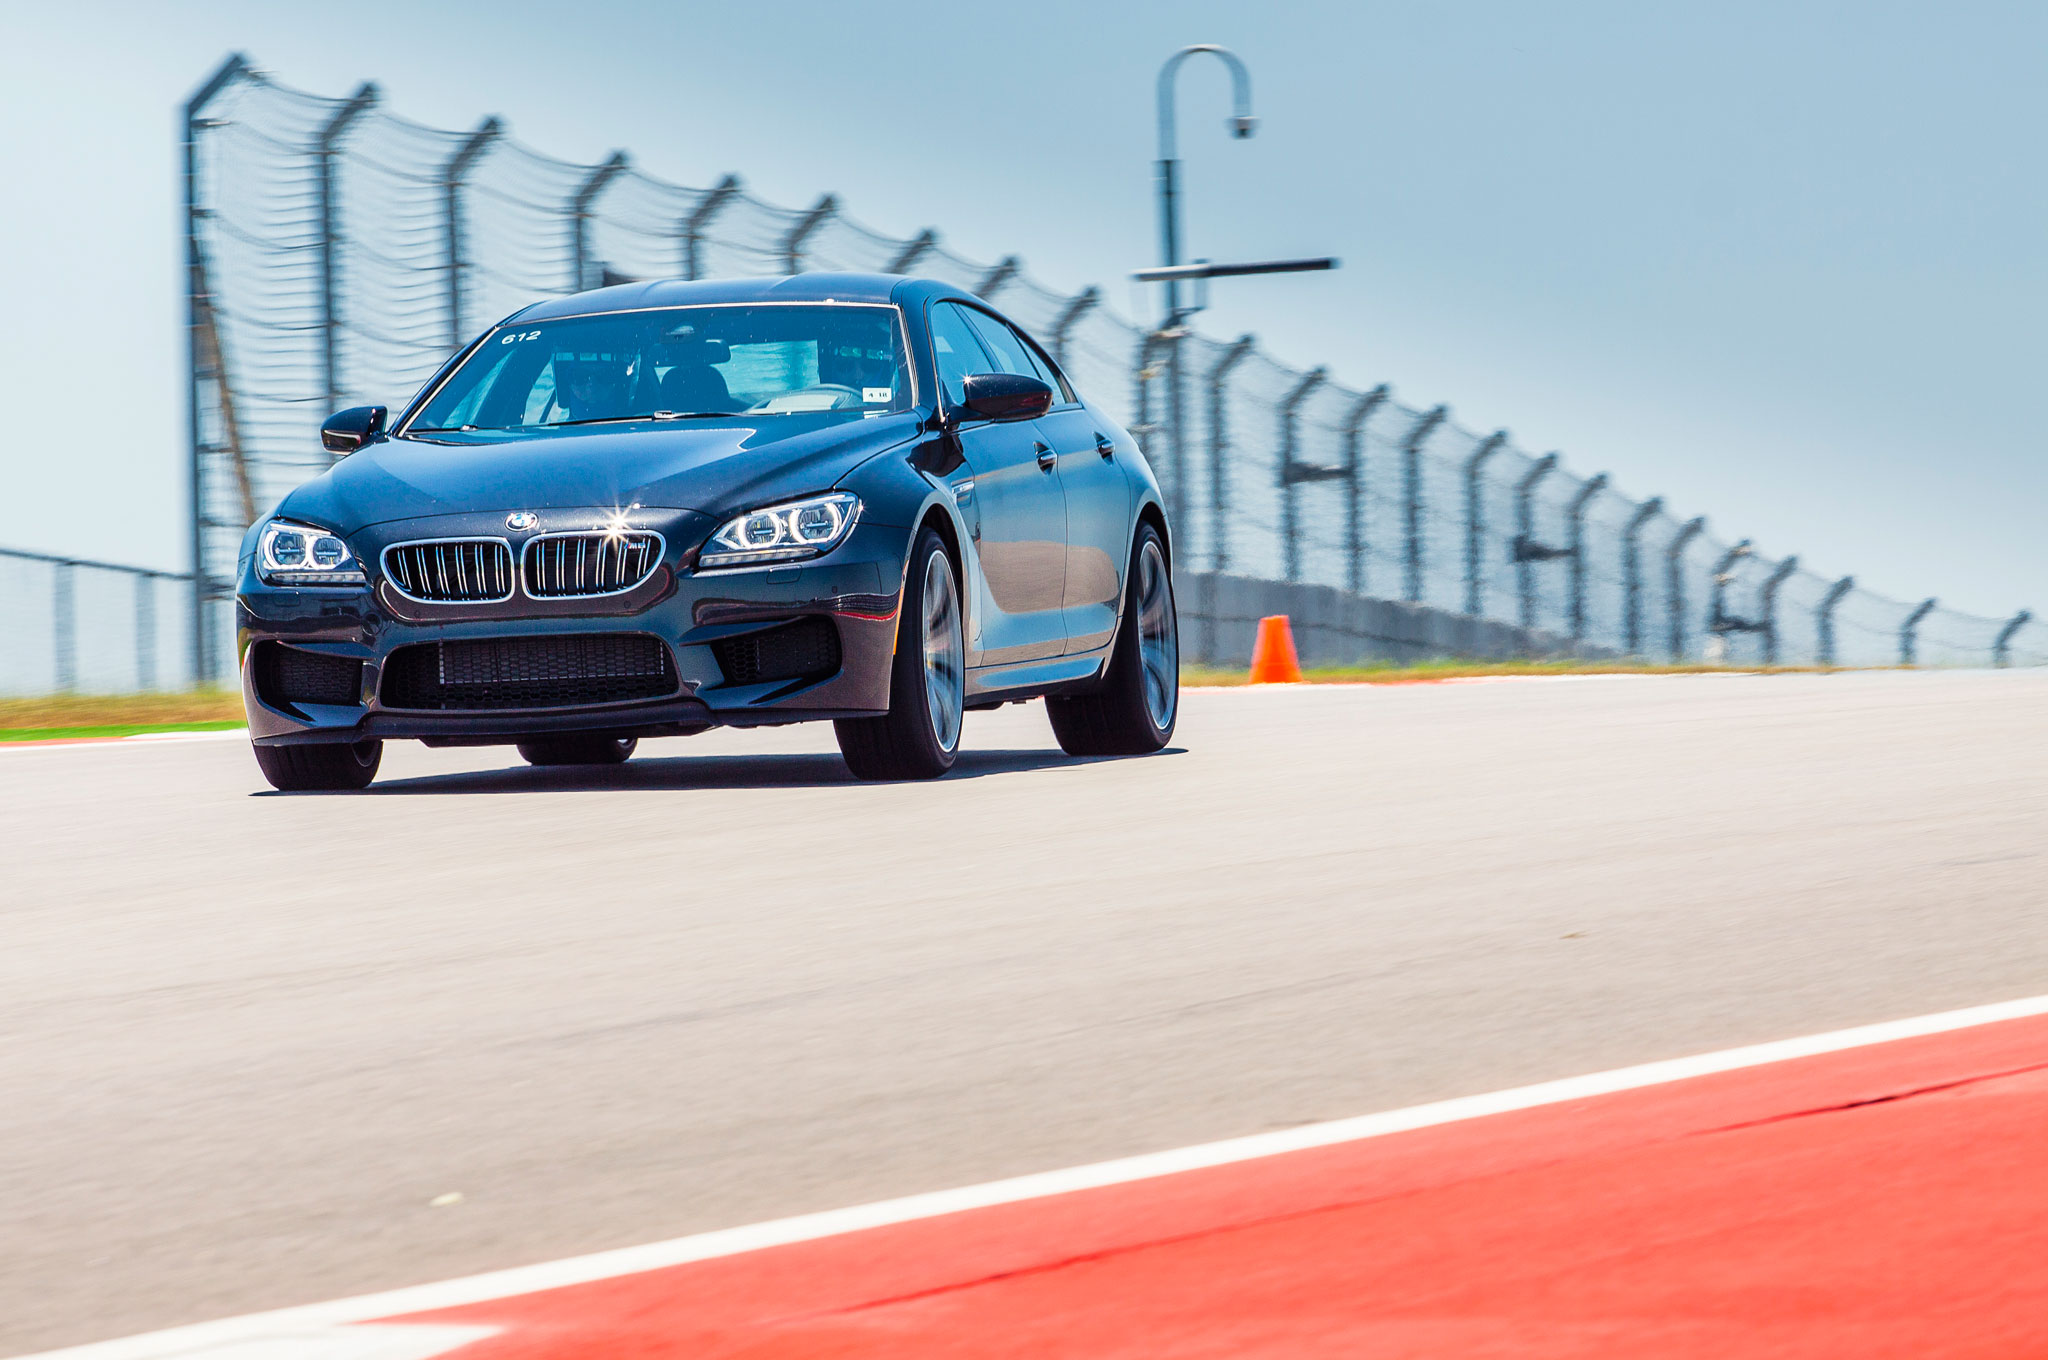 2014 BMW M6 Gran Coupe at Circuit of the Americas Automobile Magazine